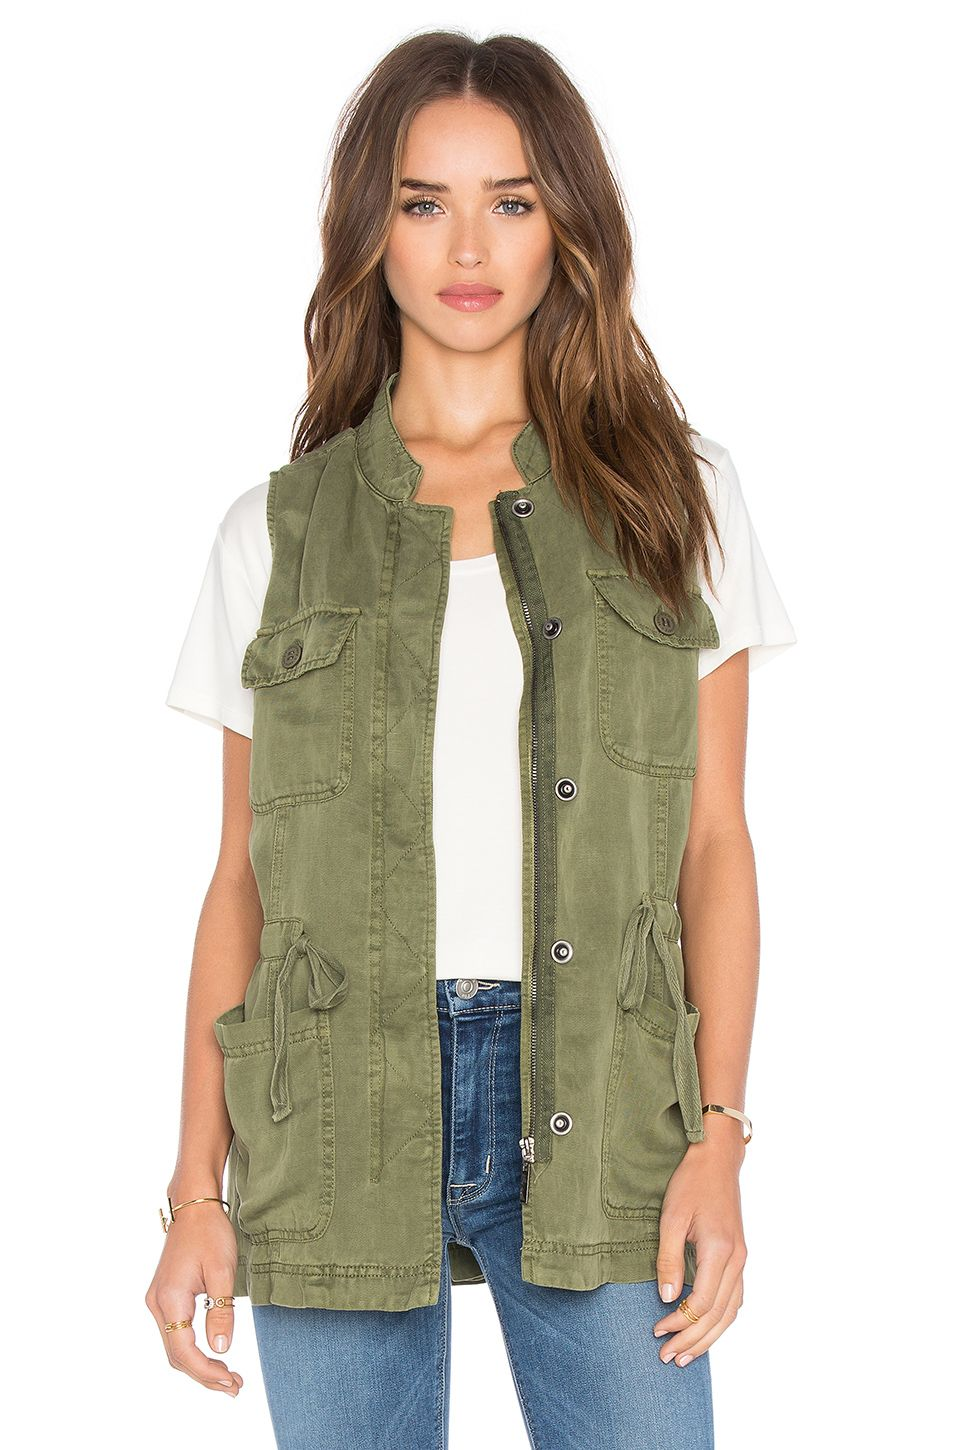 d1eae26269763 Sanctuary Canyon Military Vest in Cactus   REVOLVE   Confessions of ...